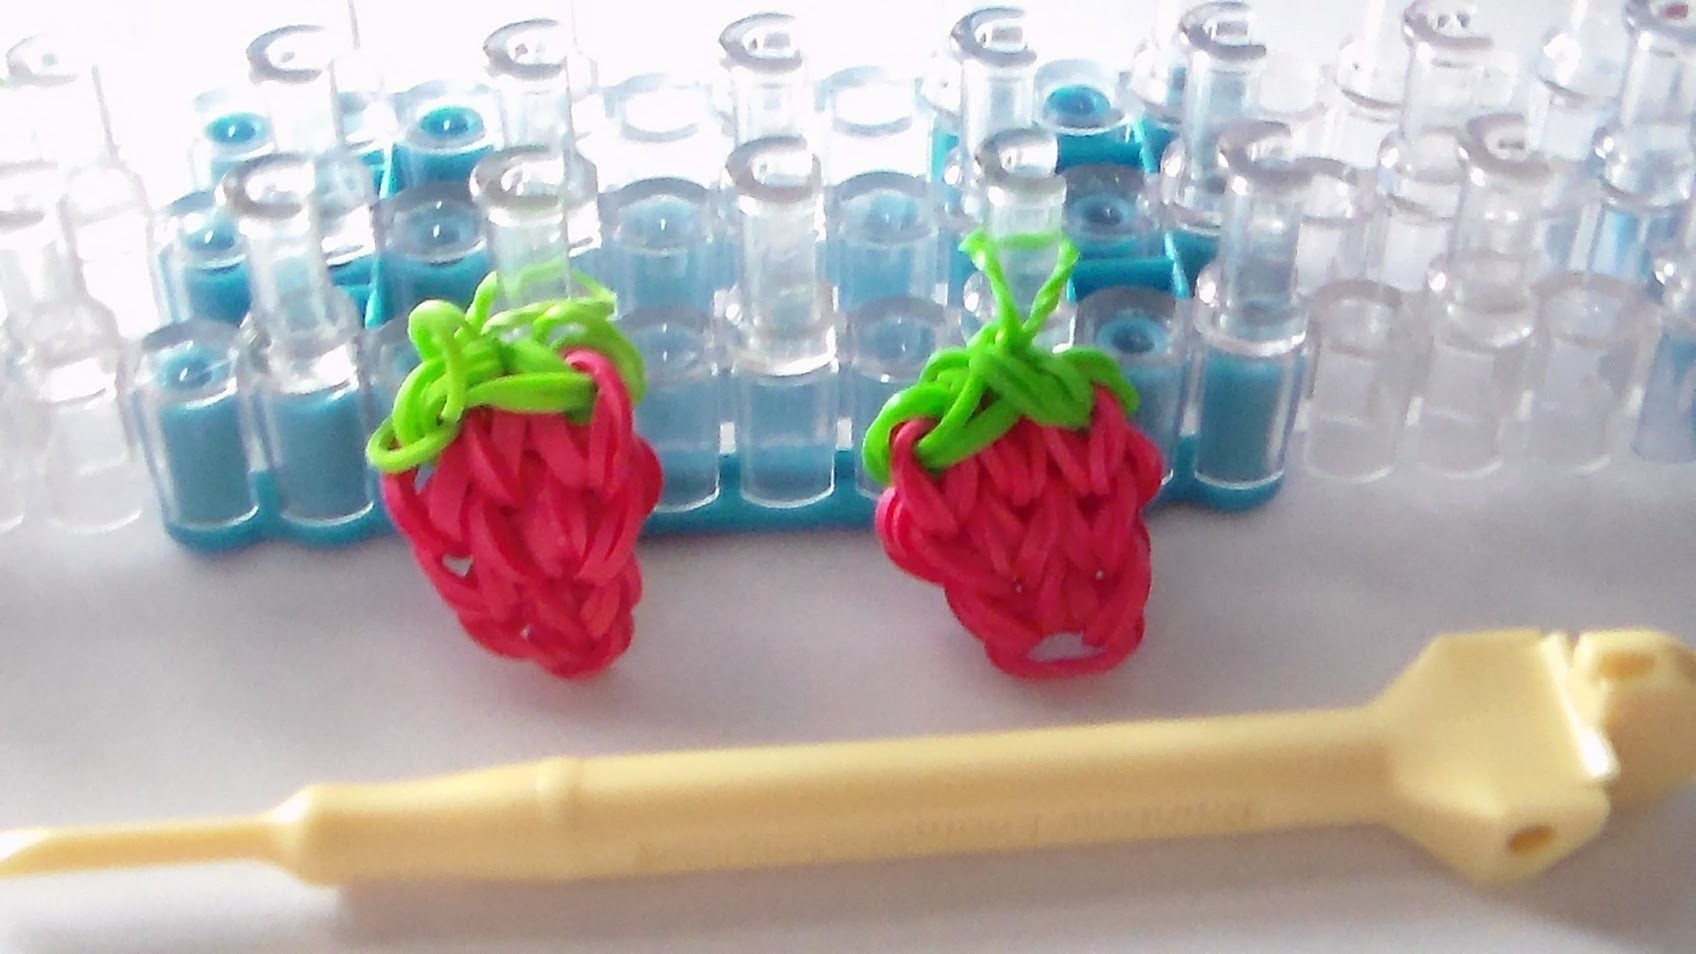 Rainbow Loom Stawberry Charm Tutorial | Como Hacer Rainbow Loom: Fresa Con Gomitas